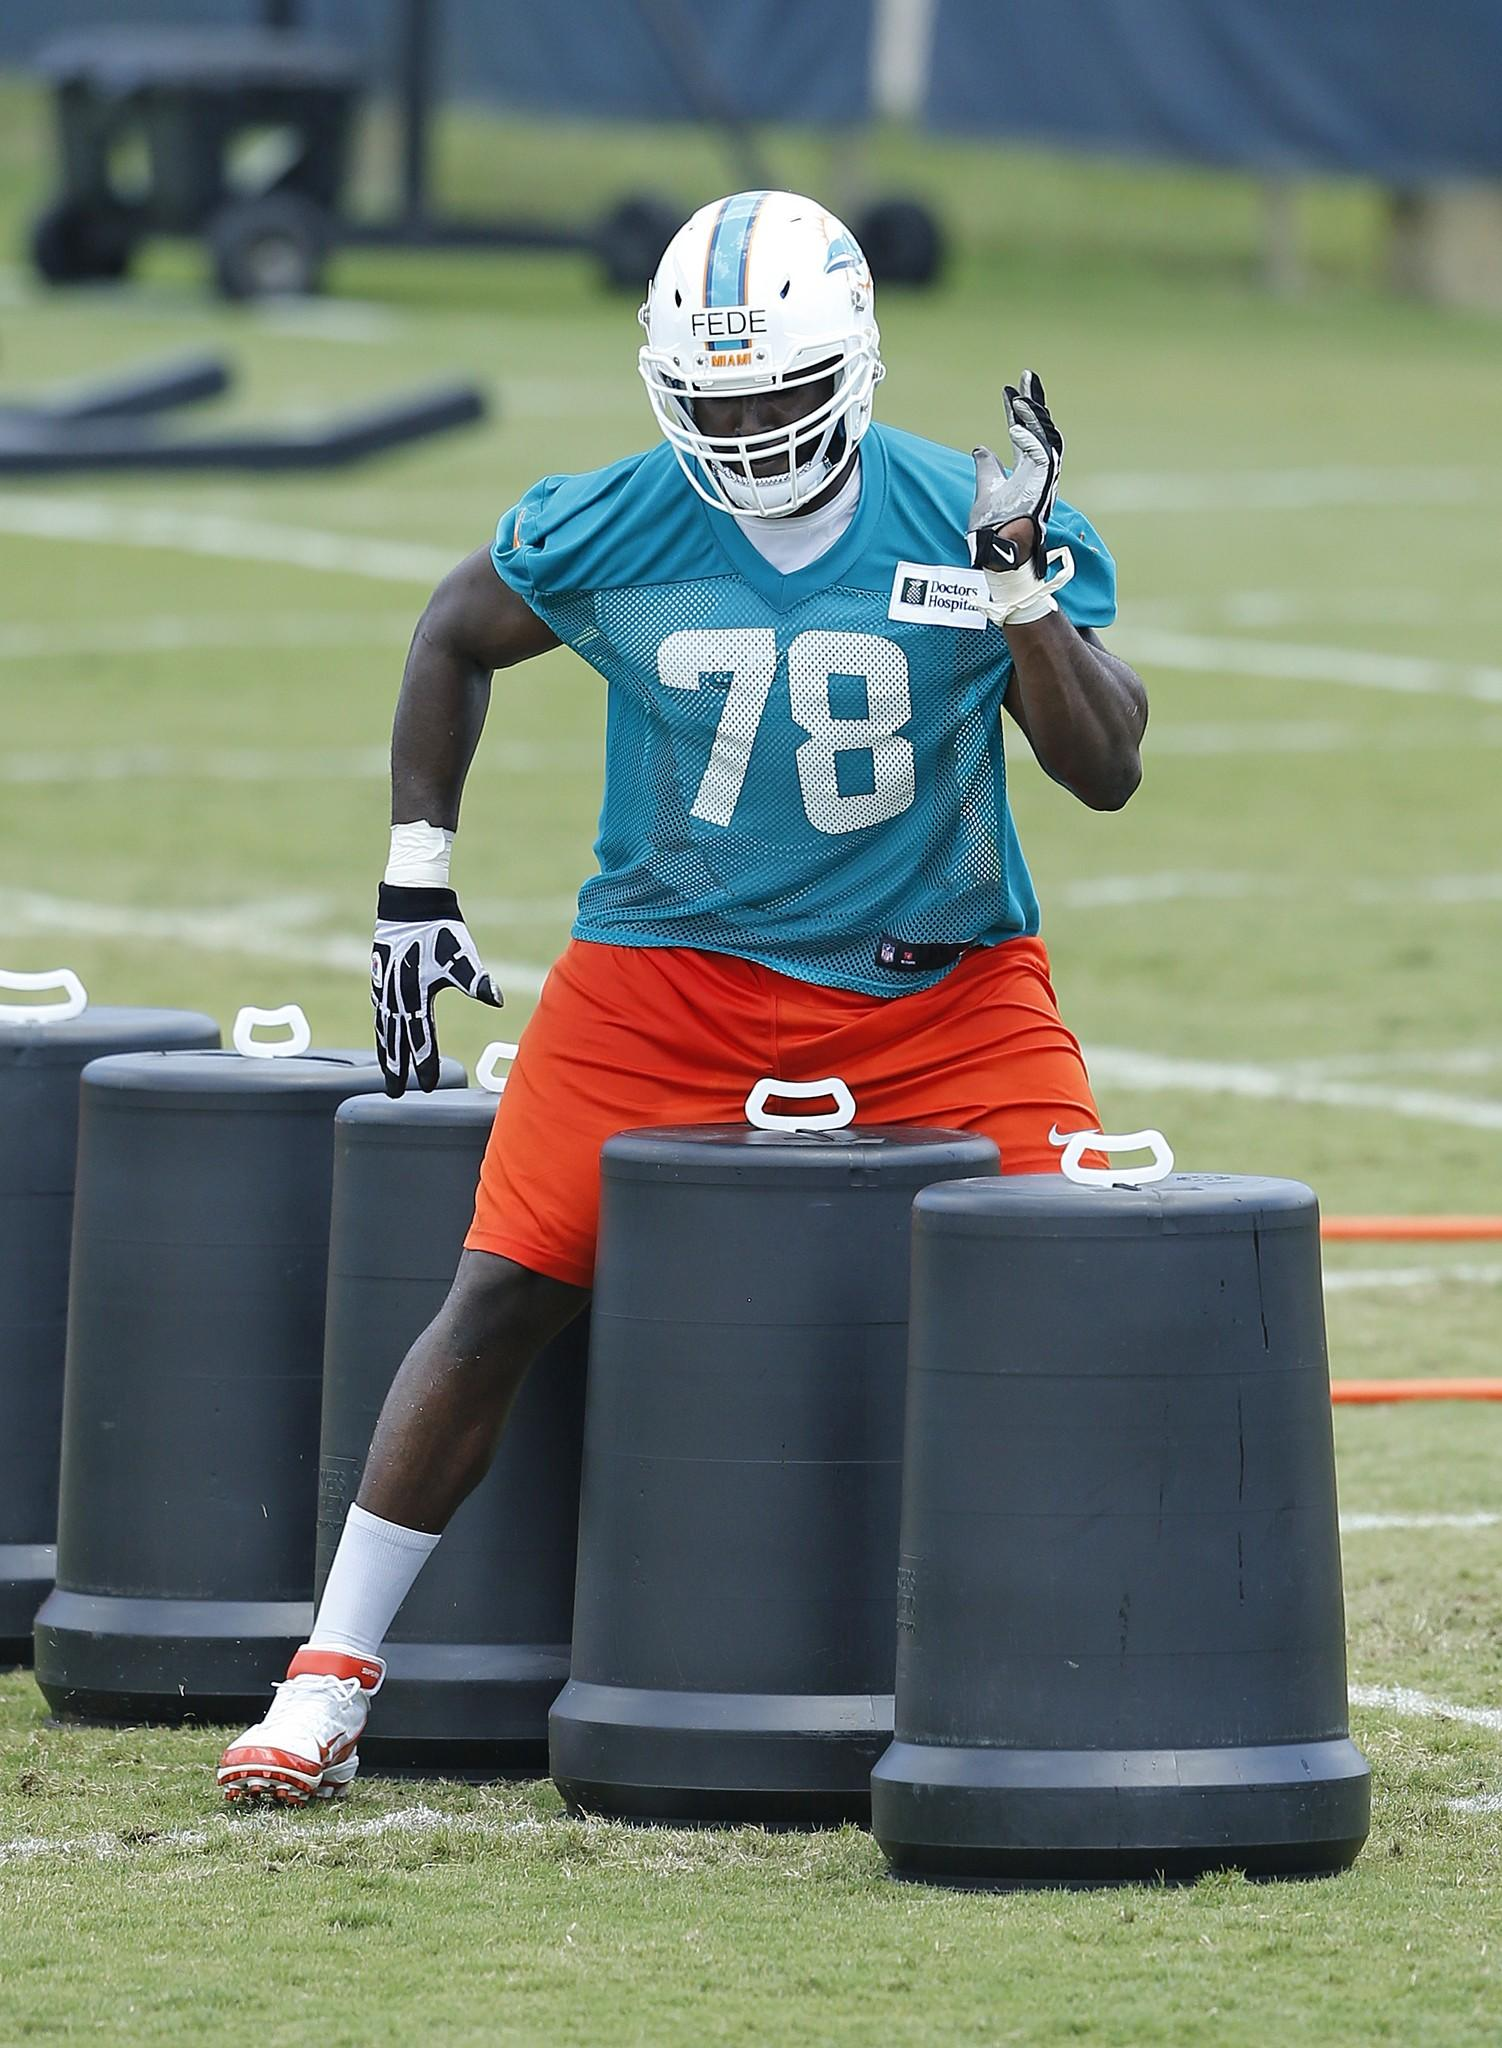 Terrence Fede #78 of the Miami Dolphins participates in drills during the rookie minicamp on May 23, 2014 at the Miami Dolphins training facility in Davie, Florida.